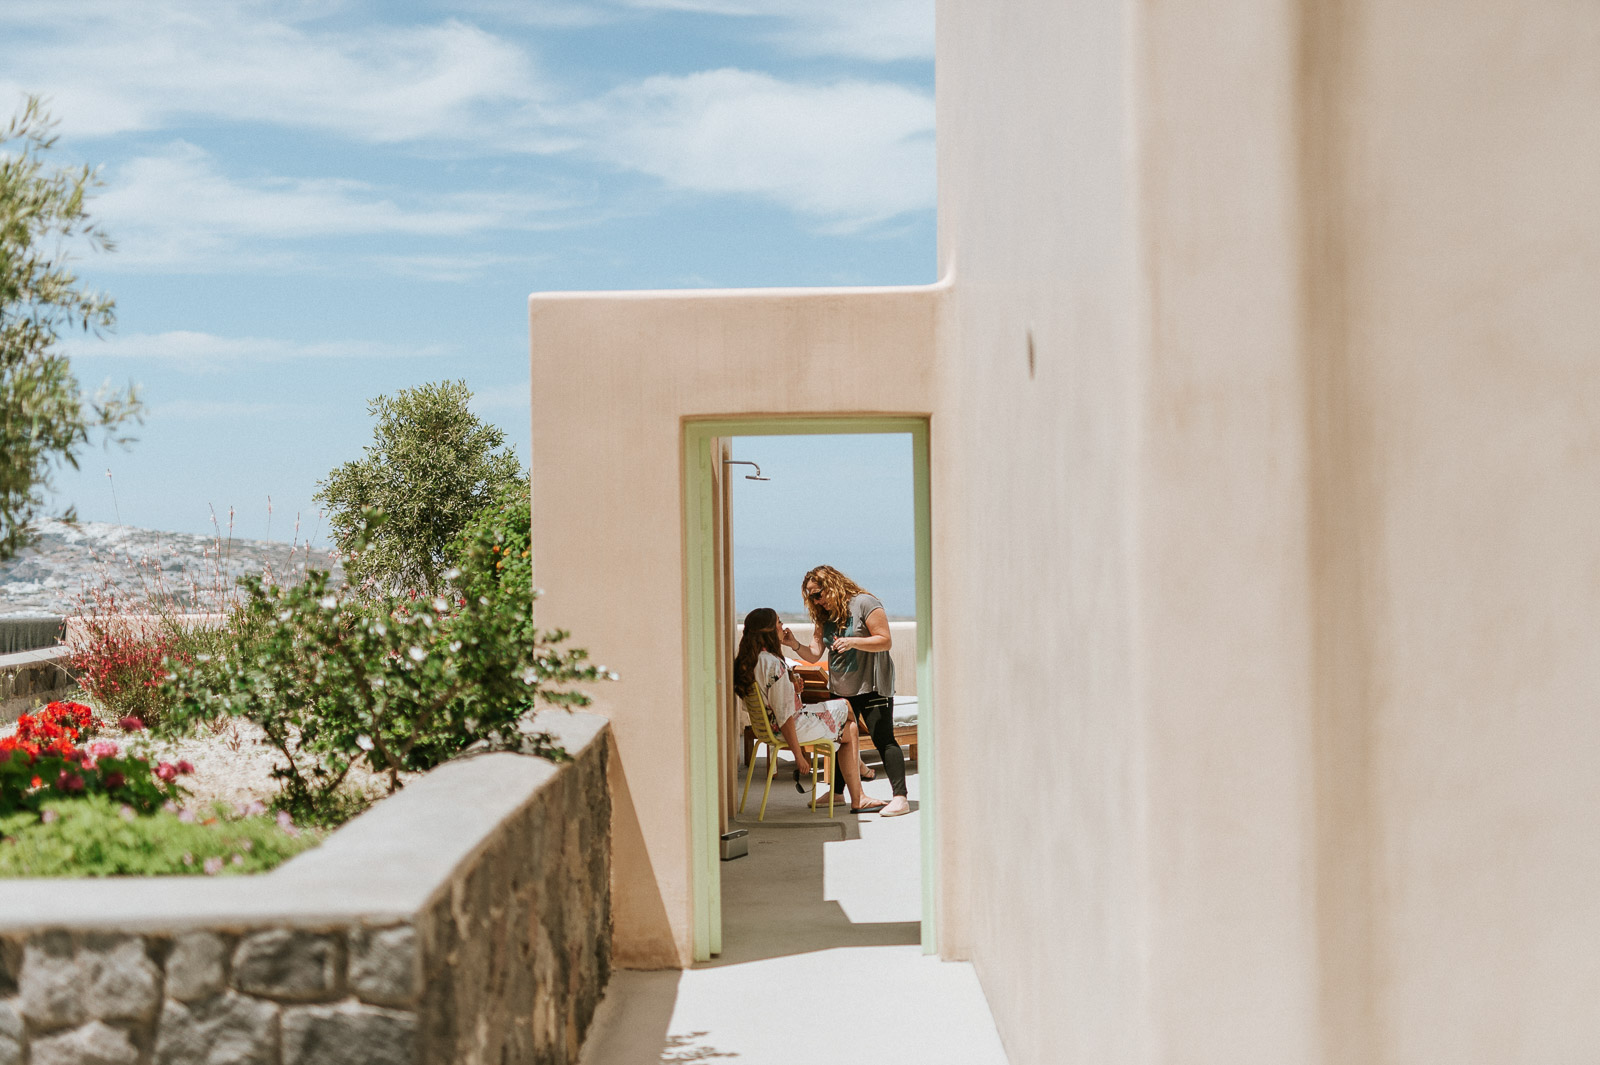 Santorini-Wedding-Photographer-Greece-Destination-Weddings-Mait-Juriado-M&J-Studios-019